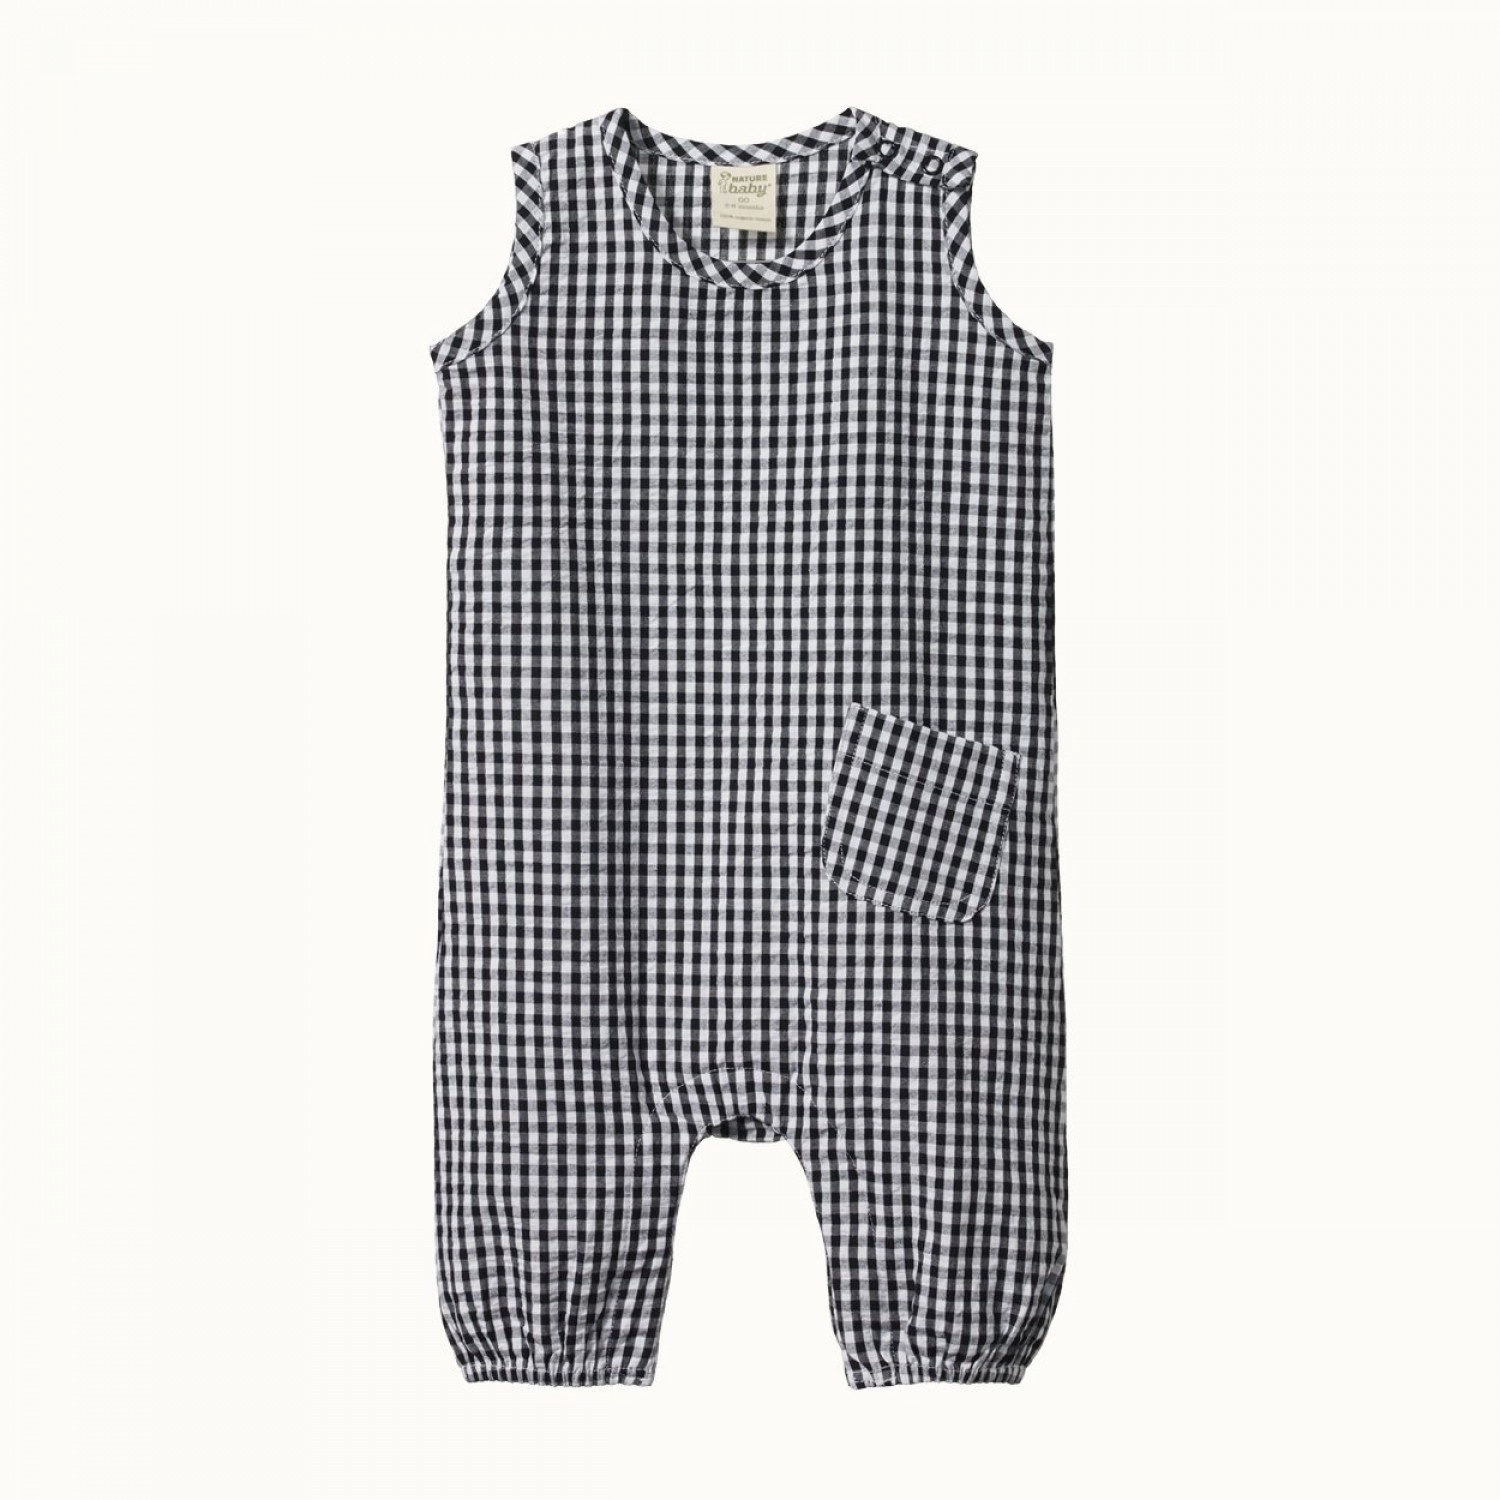 GINGHAM CEDAR SUIT - NAVY CHECK